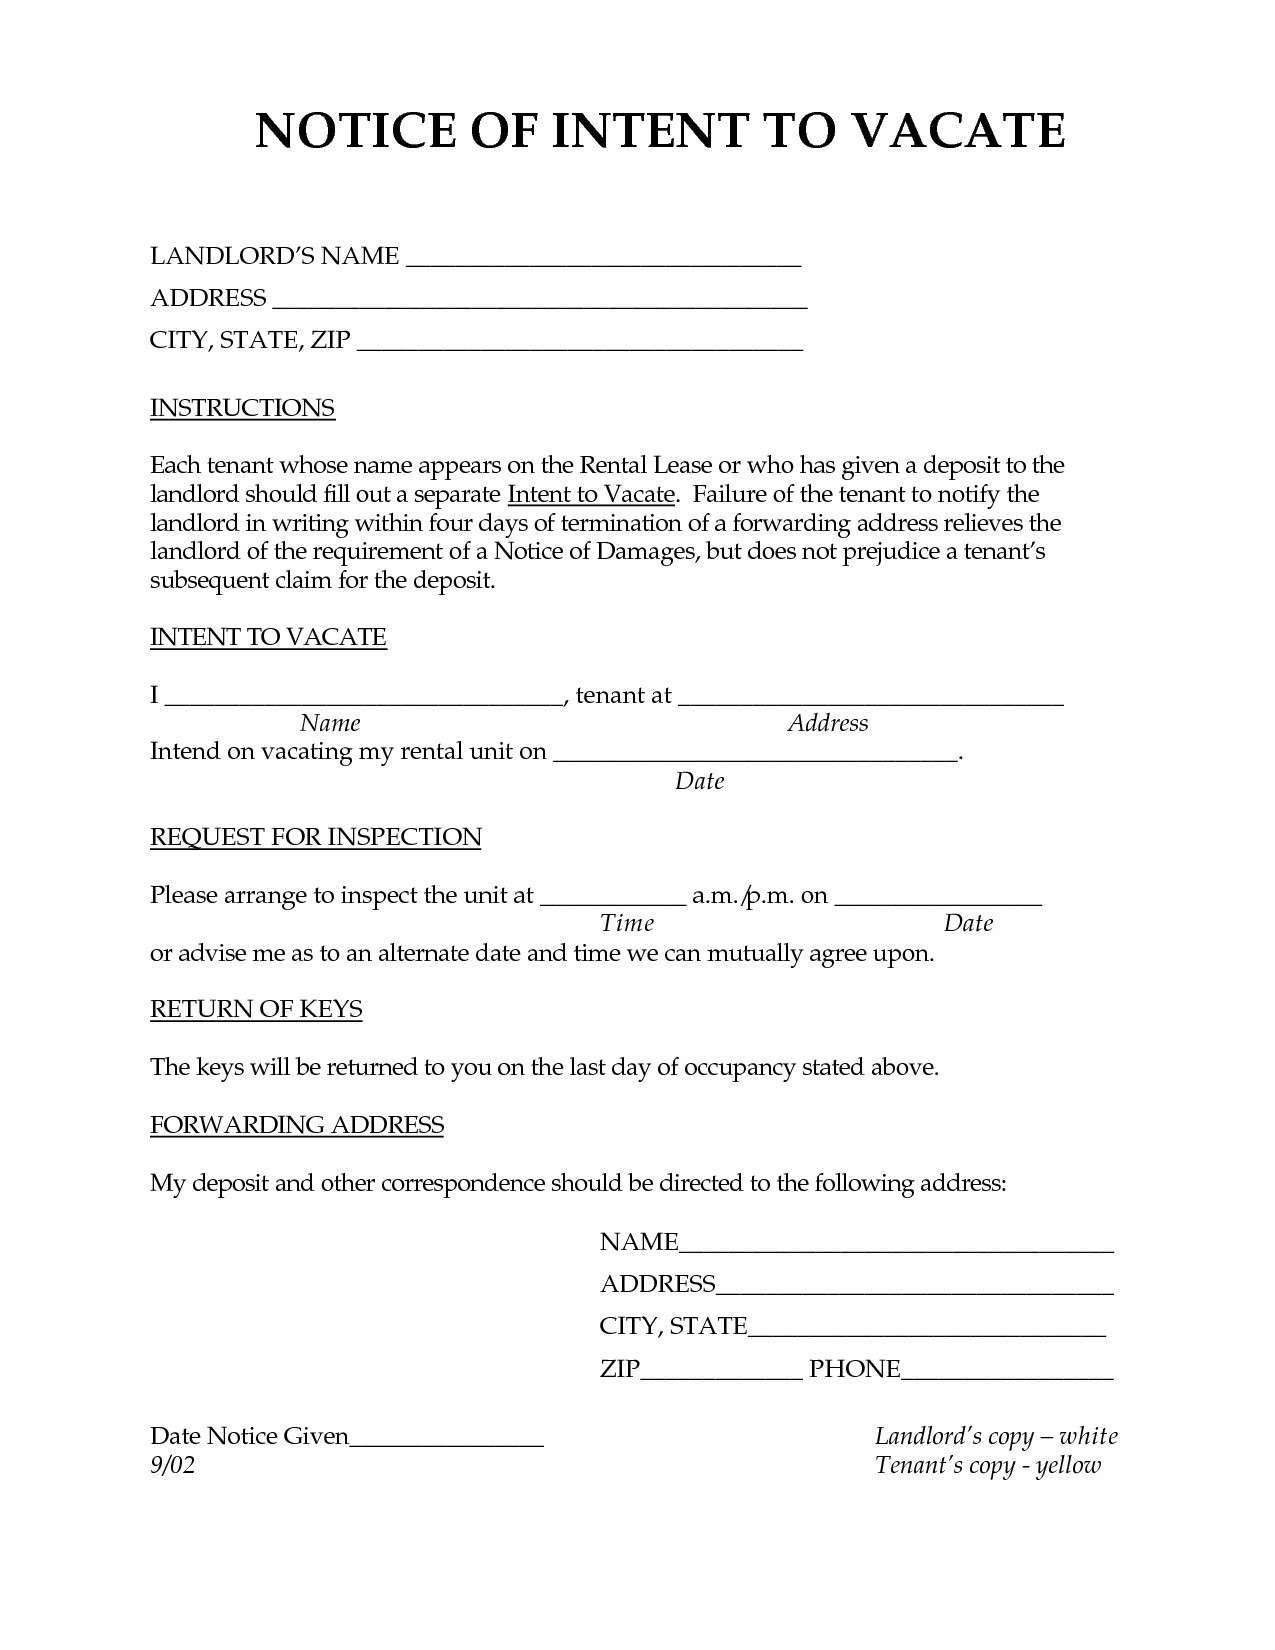 Notice Of Intent To Vacate Texas Template